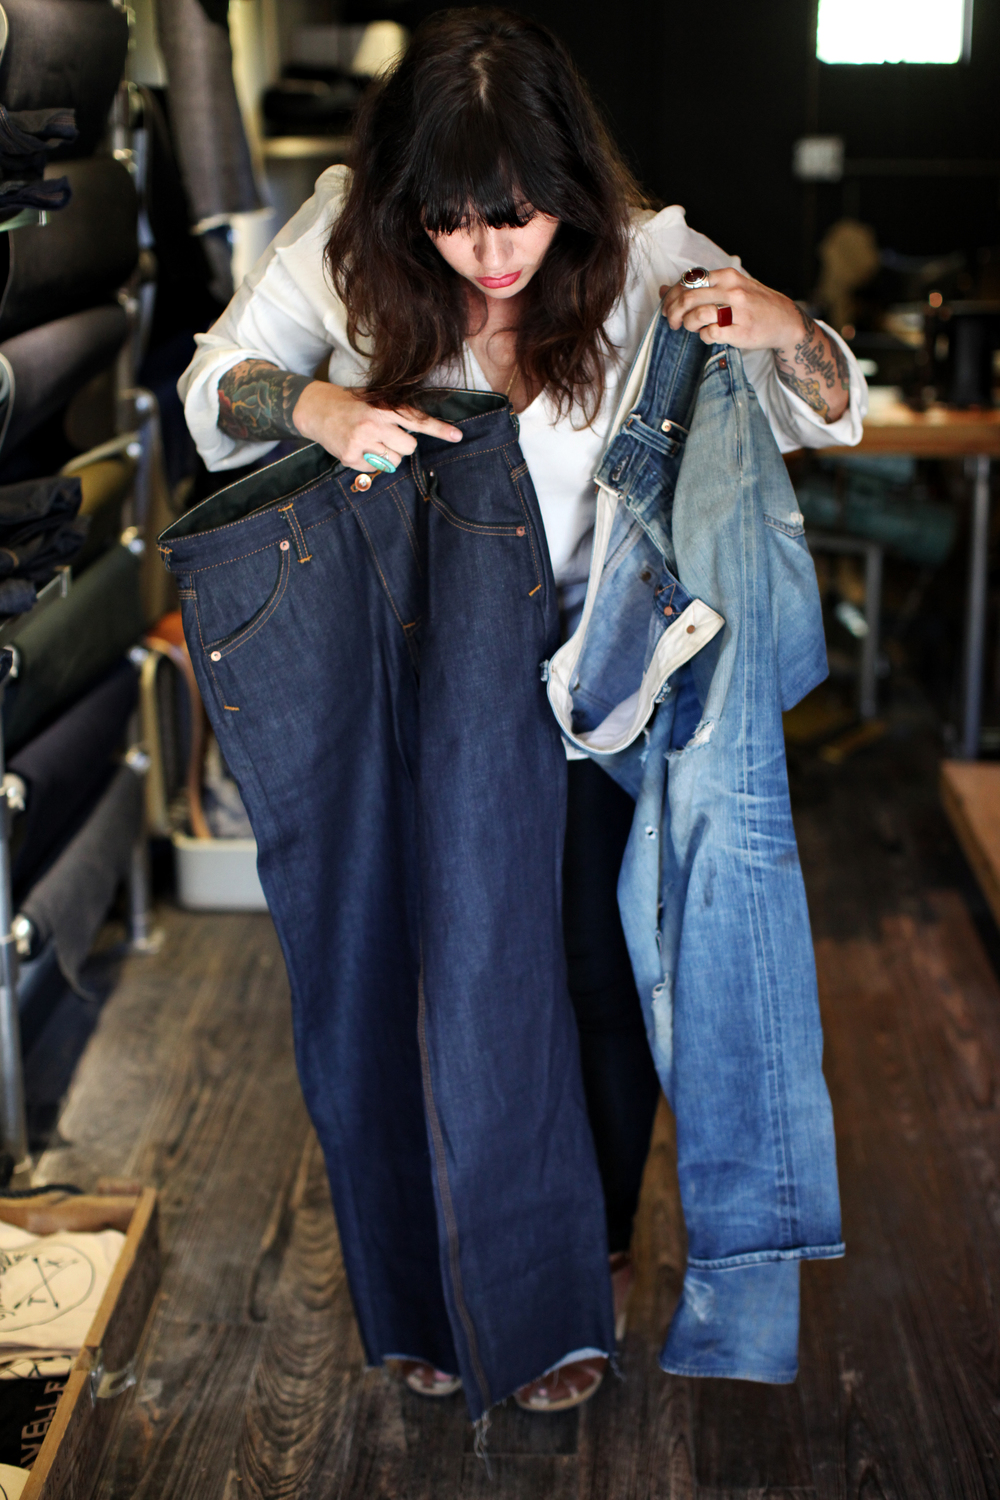 Co-founder Selenia Rios compares new jeans from Traveller Denim Co. (left) to the same jeans that are three years old (right).